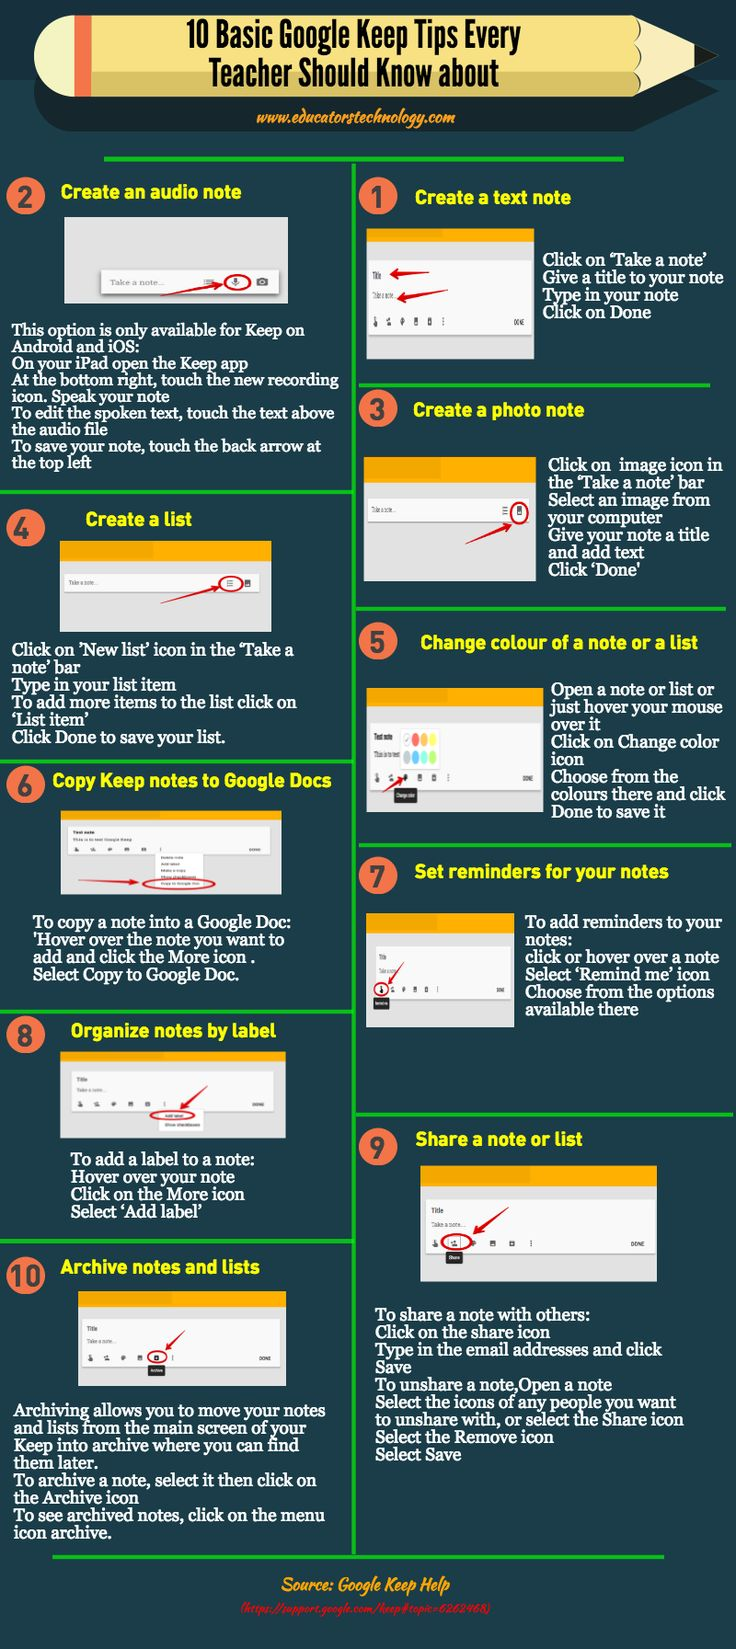 10 Basic Google Keep Tips Every Teacher Should Know about...